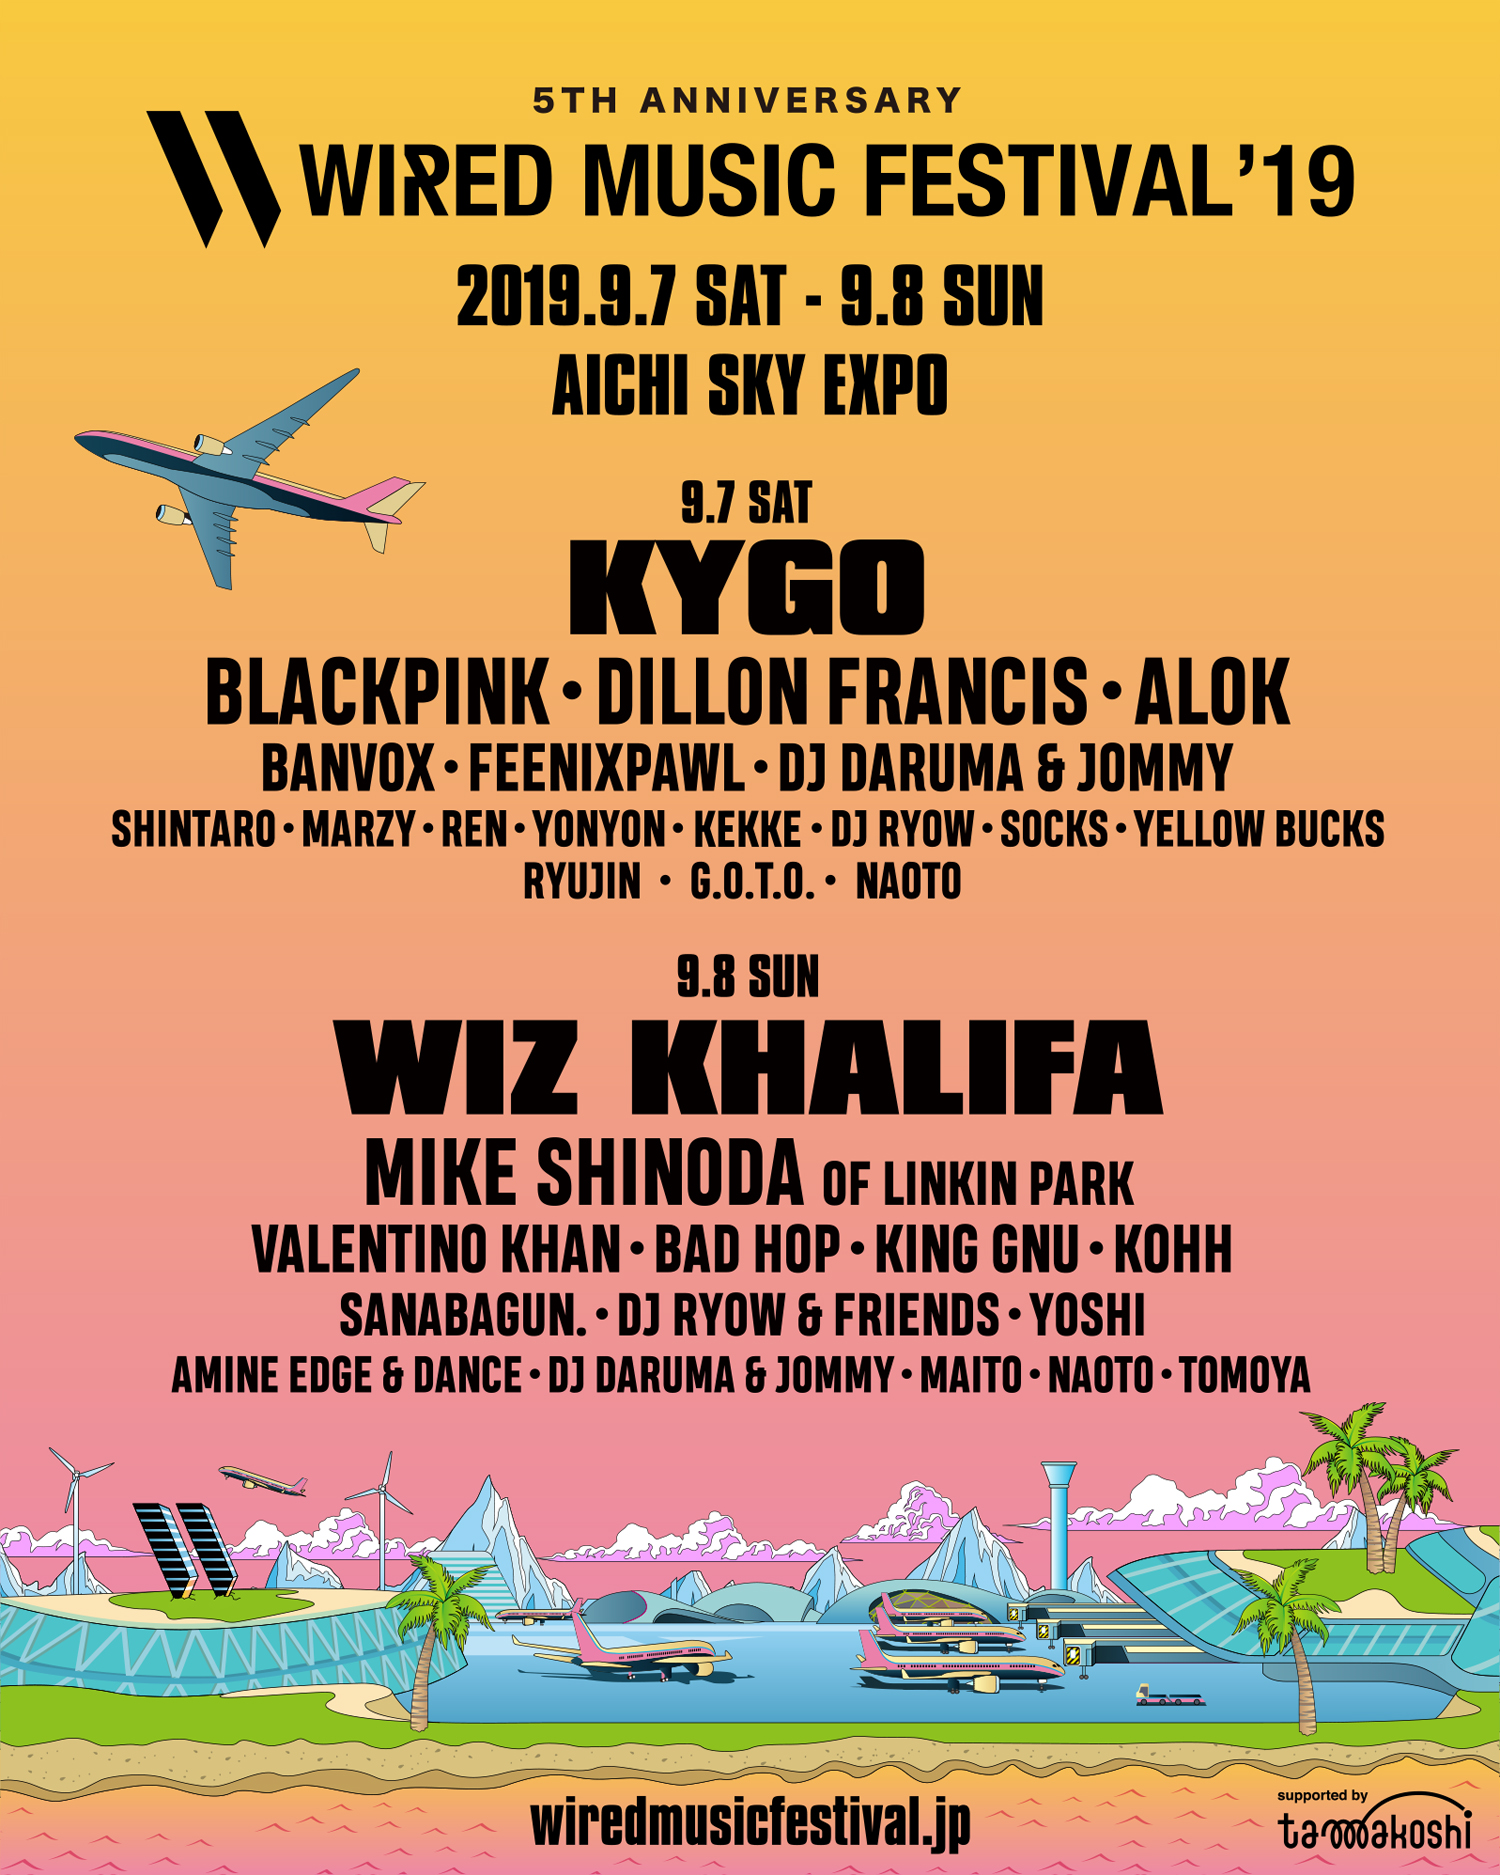 【イベント情報】WIRED MUSIC FESTIVAL'19